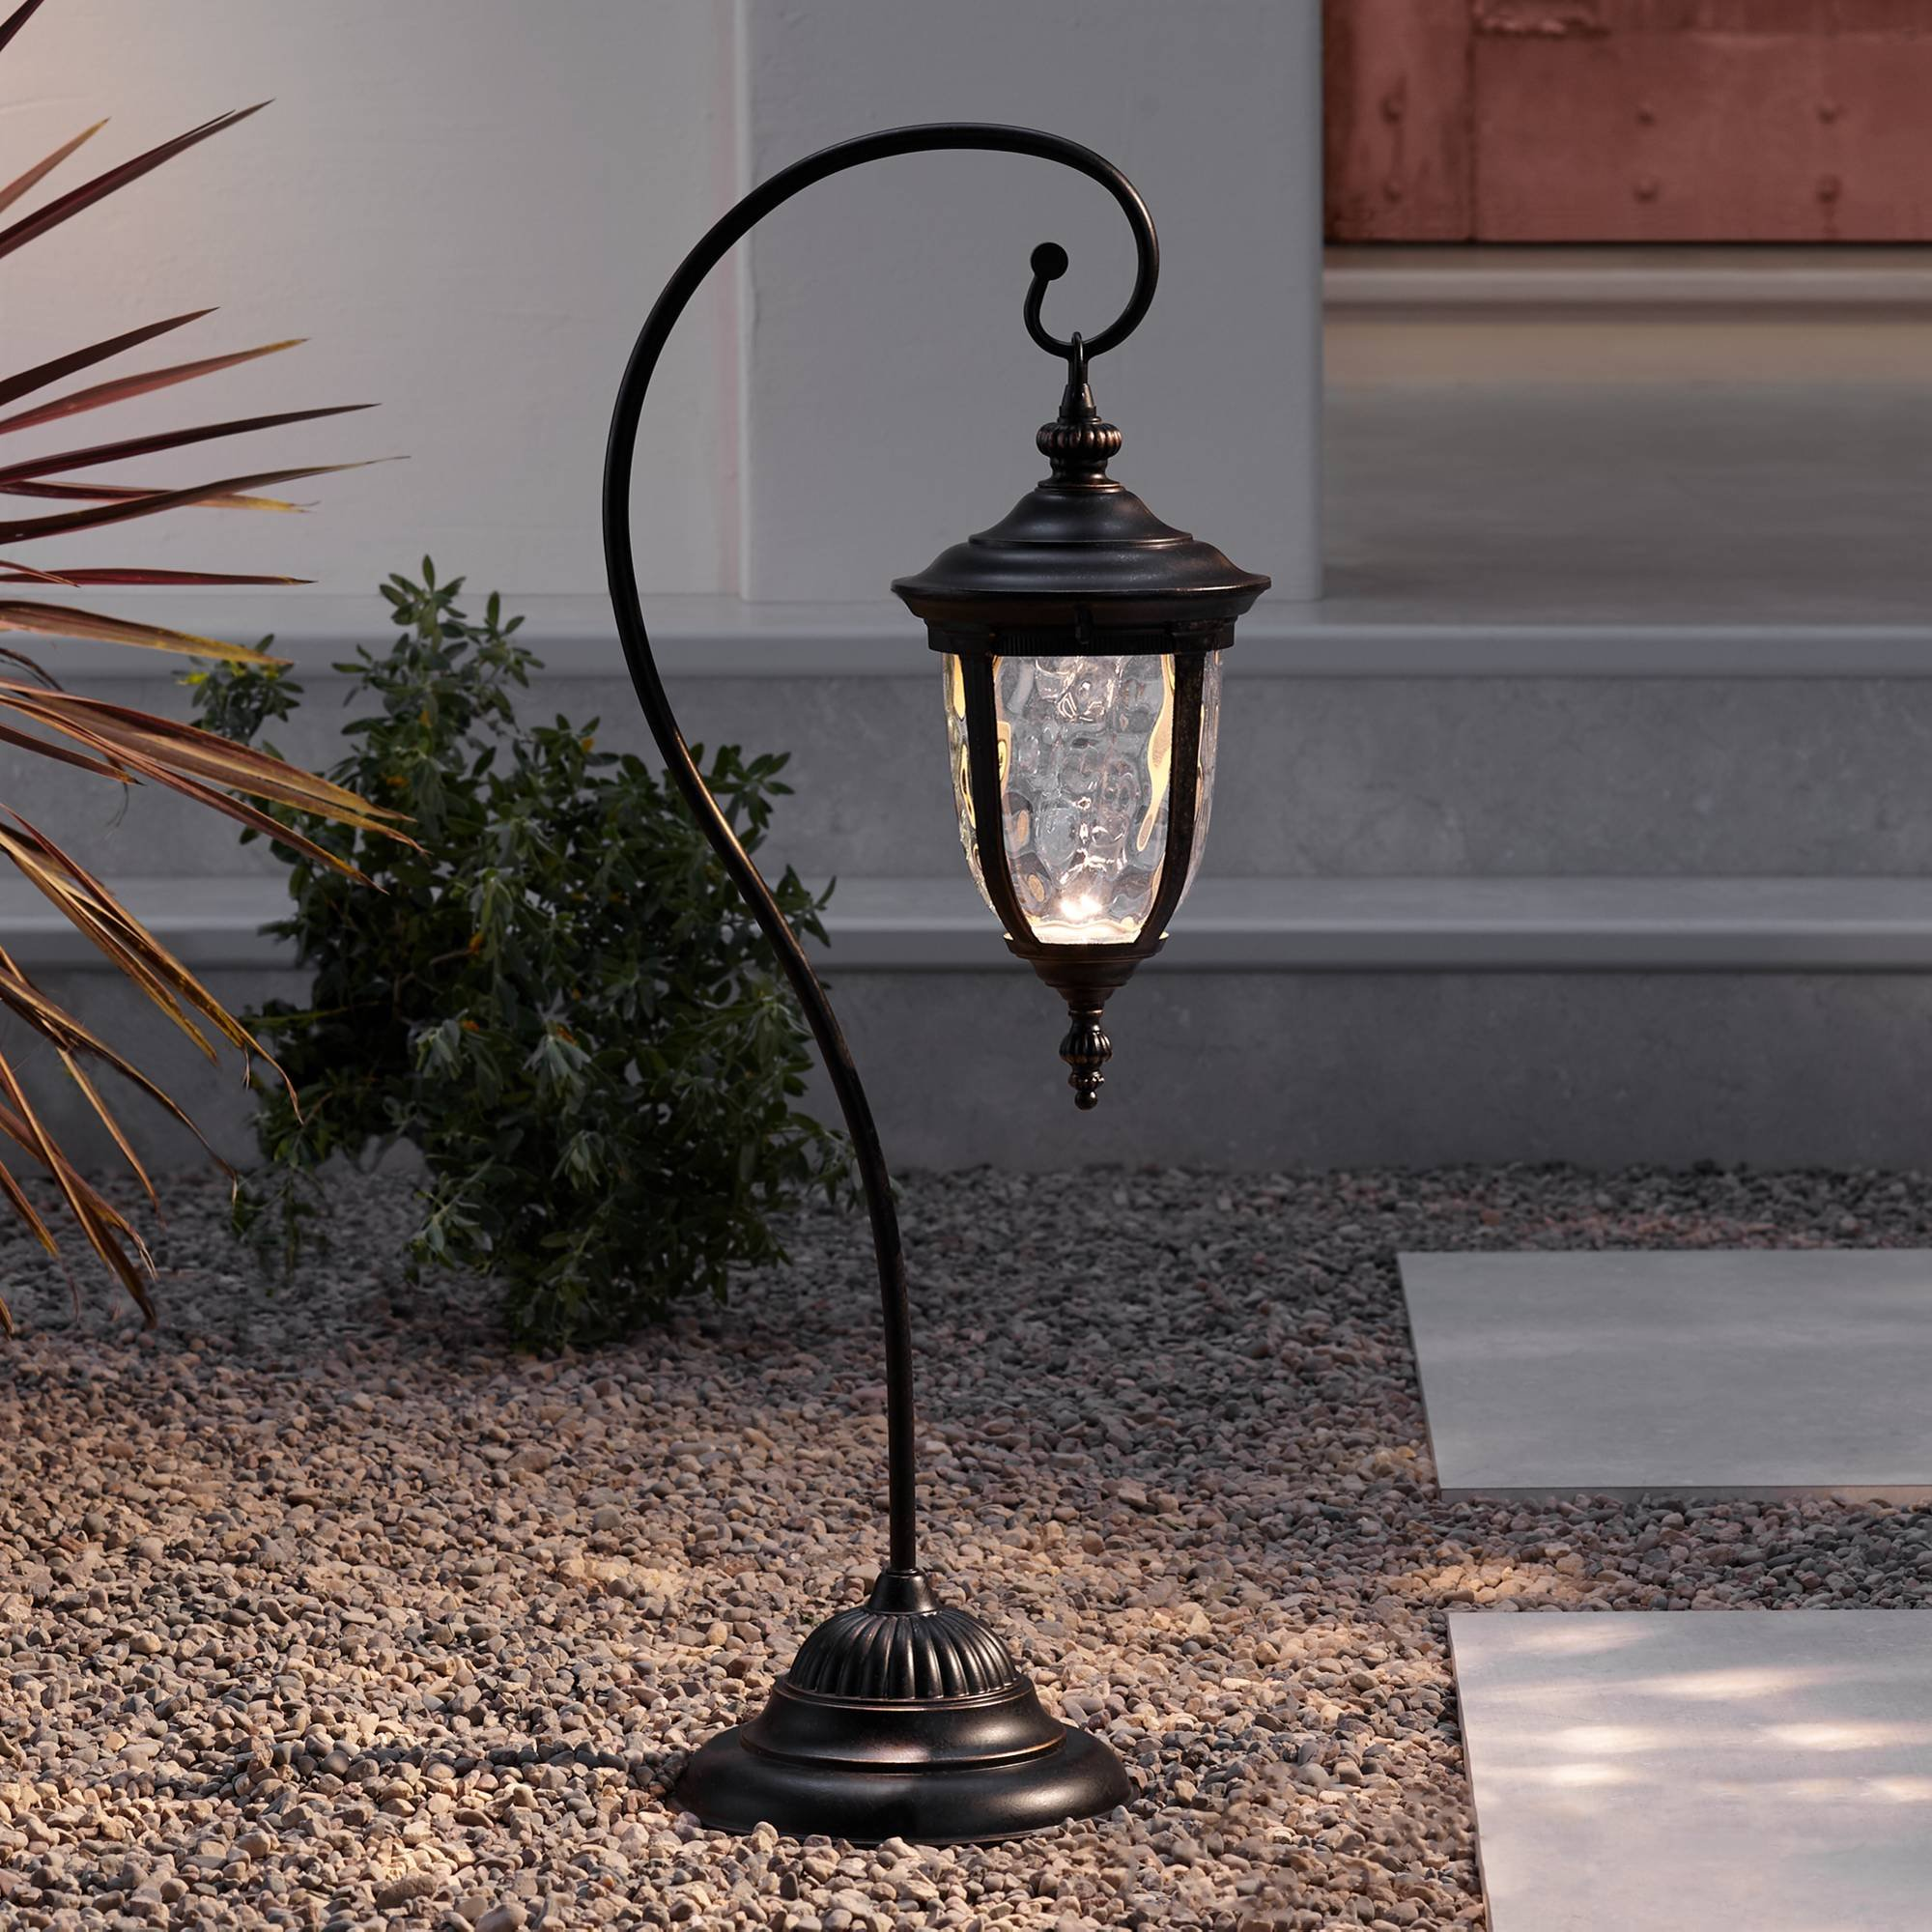 Bellagio Collection 32 1/2'' High LED Landscape Path Light - John Timberland